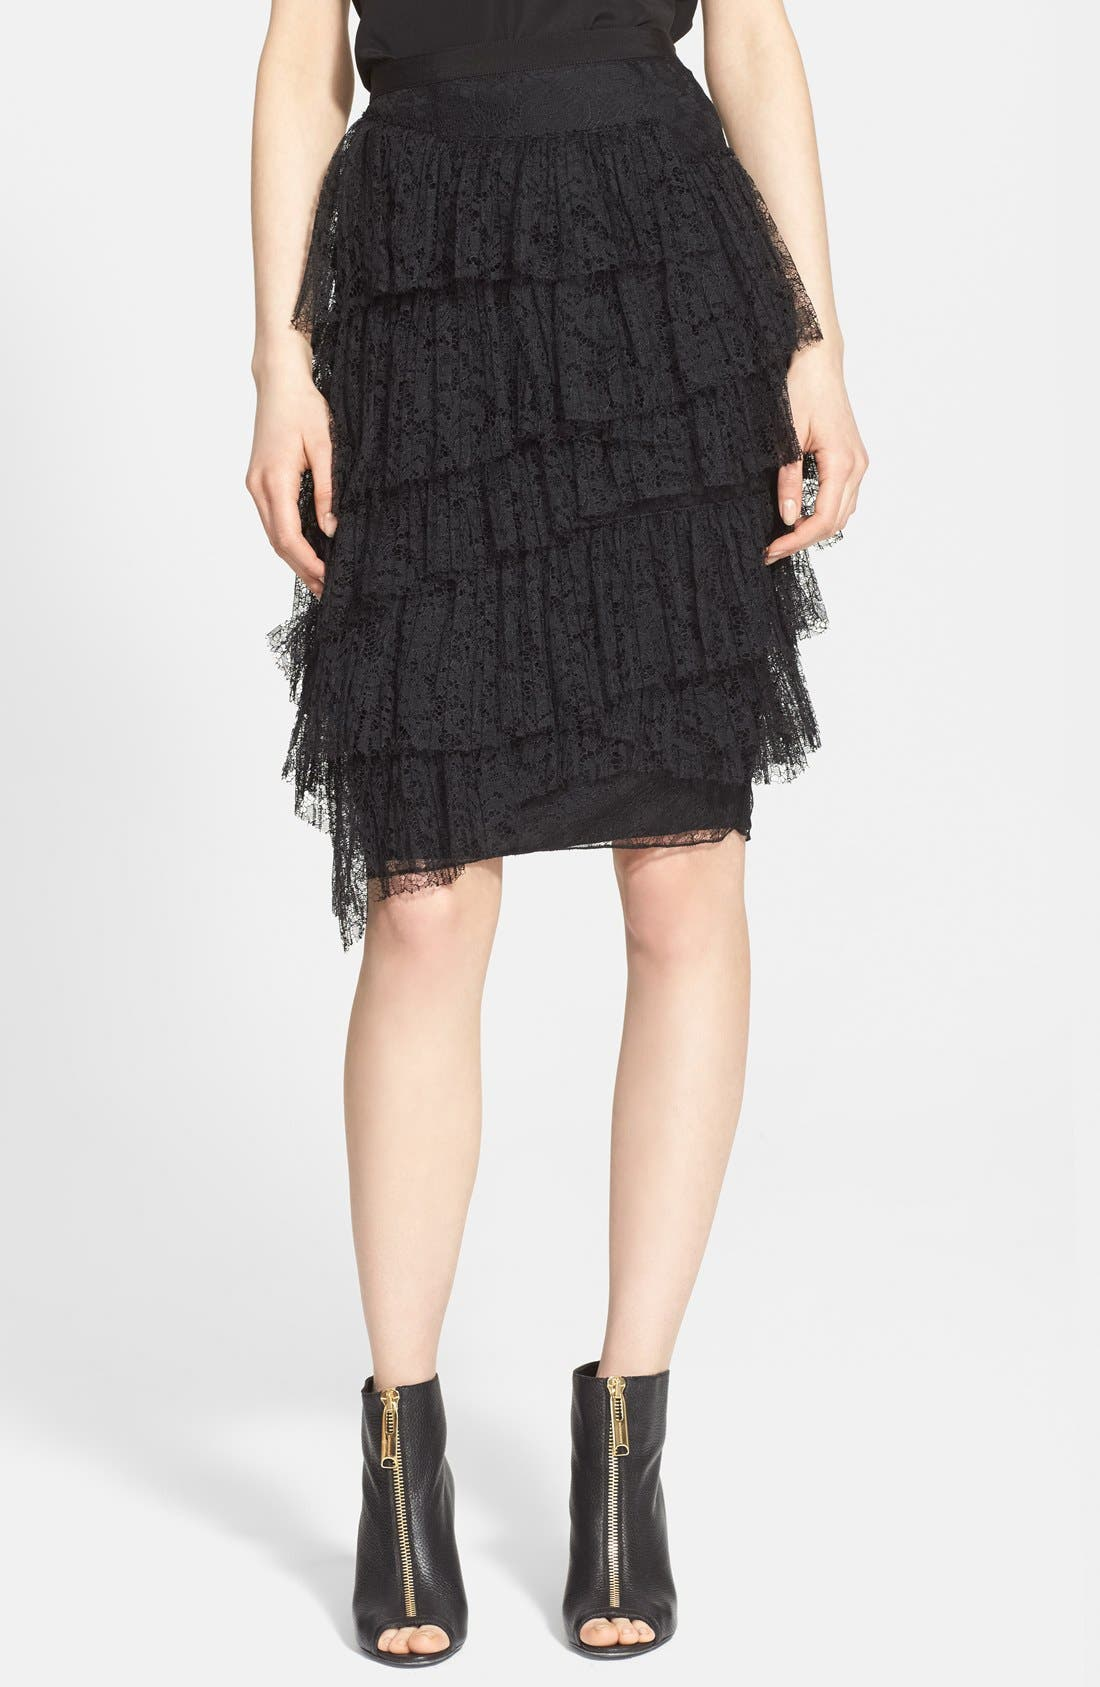 Burberry London Tiered Chantilly Lace Skirt